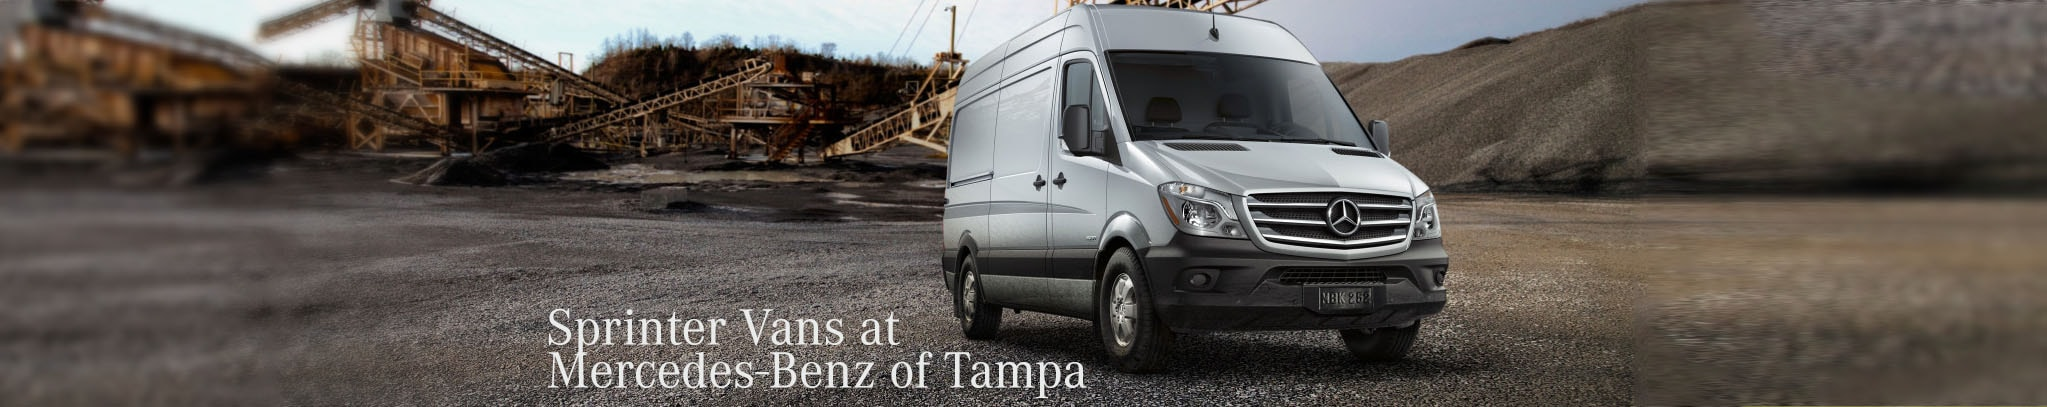 Sprinter Mercedes Vans in Tampa